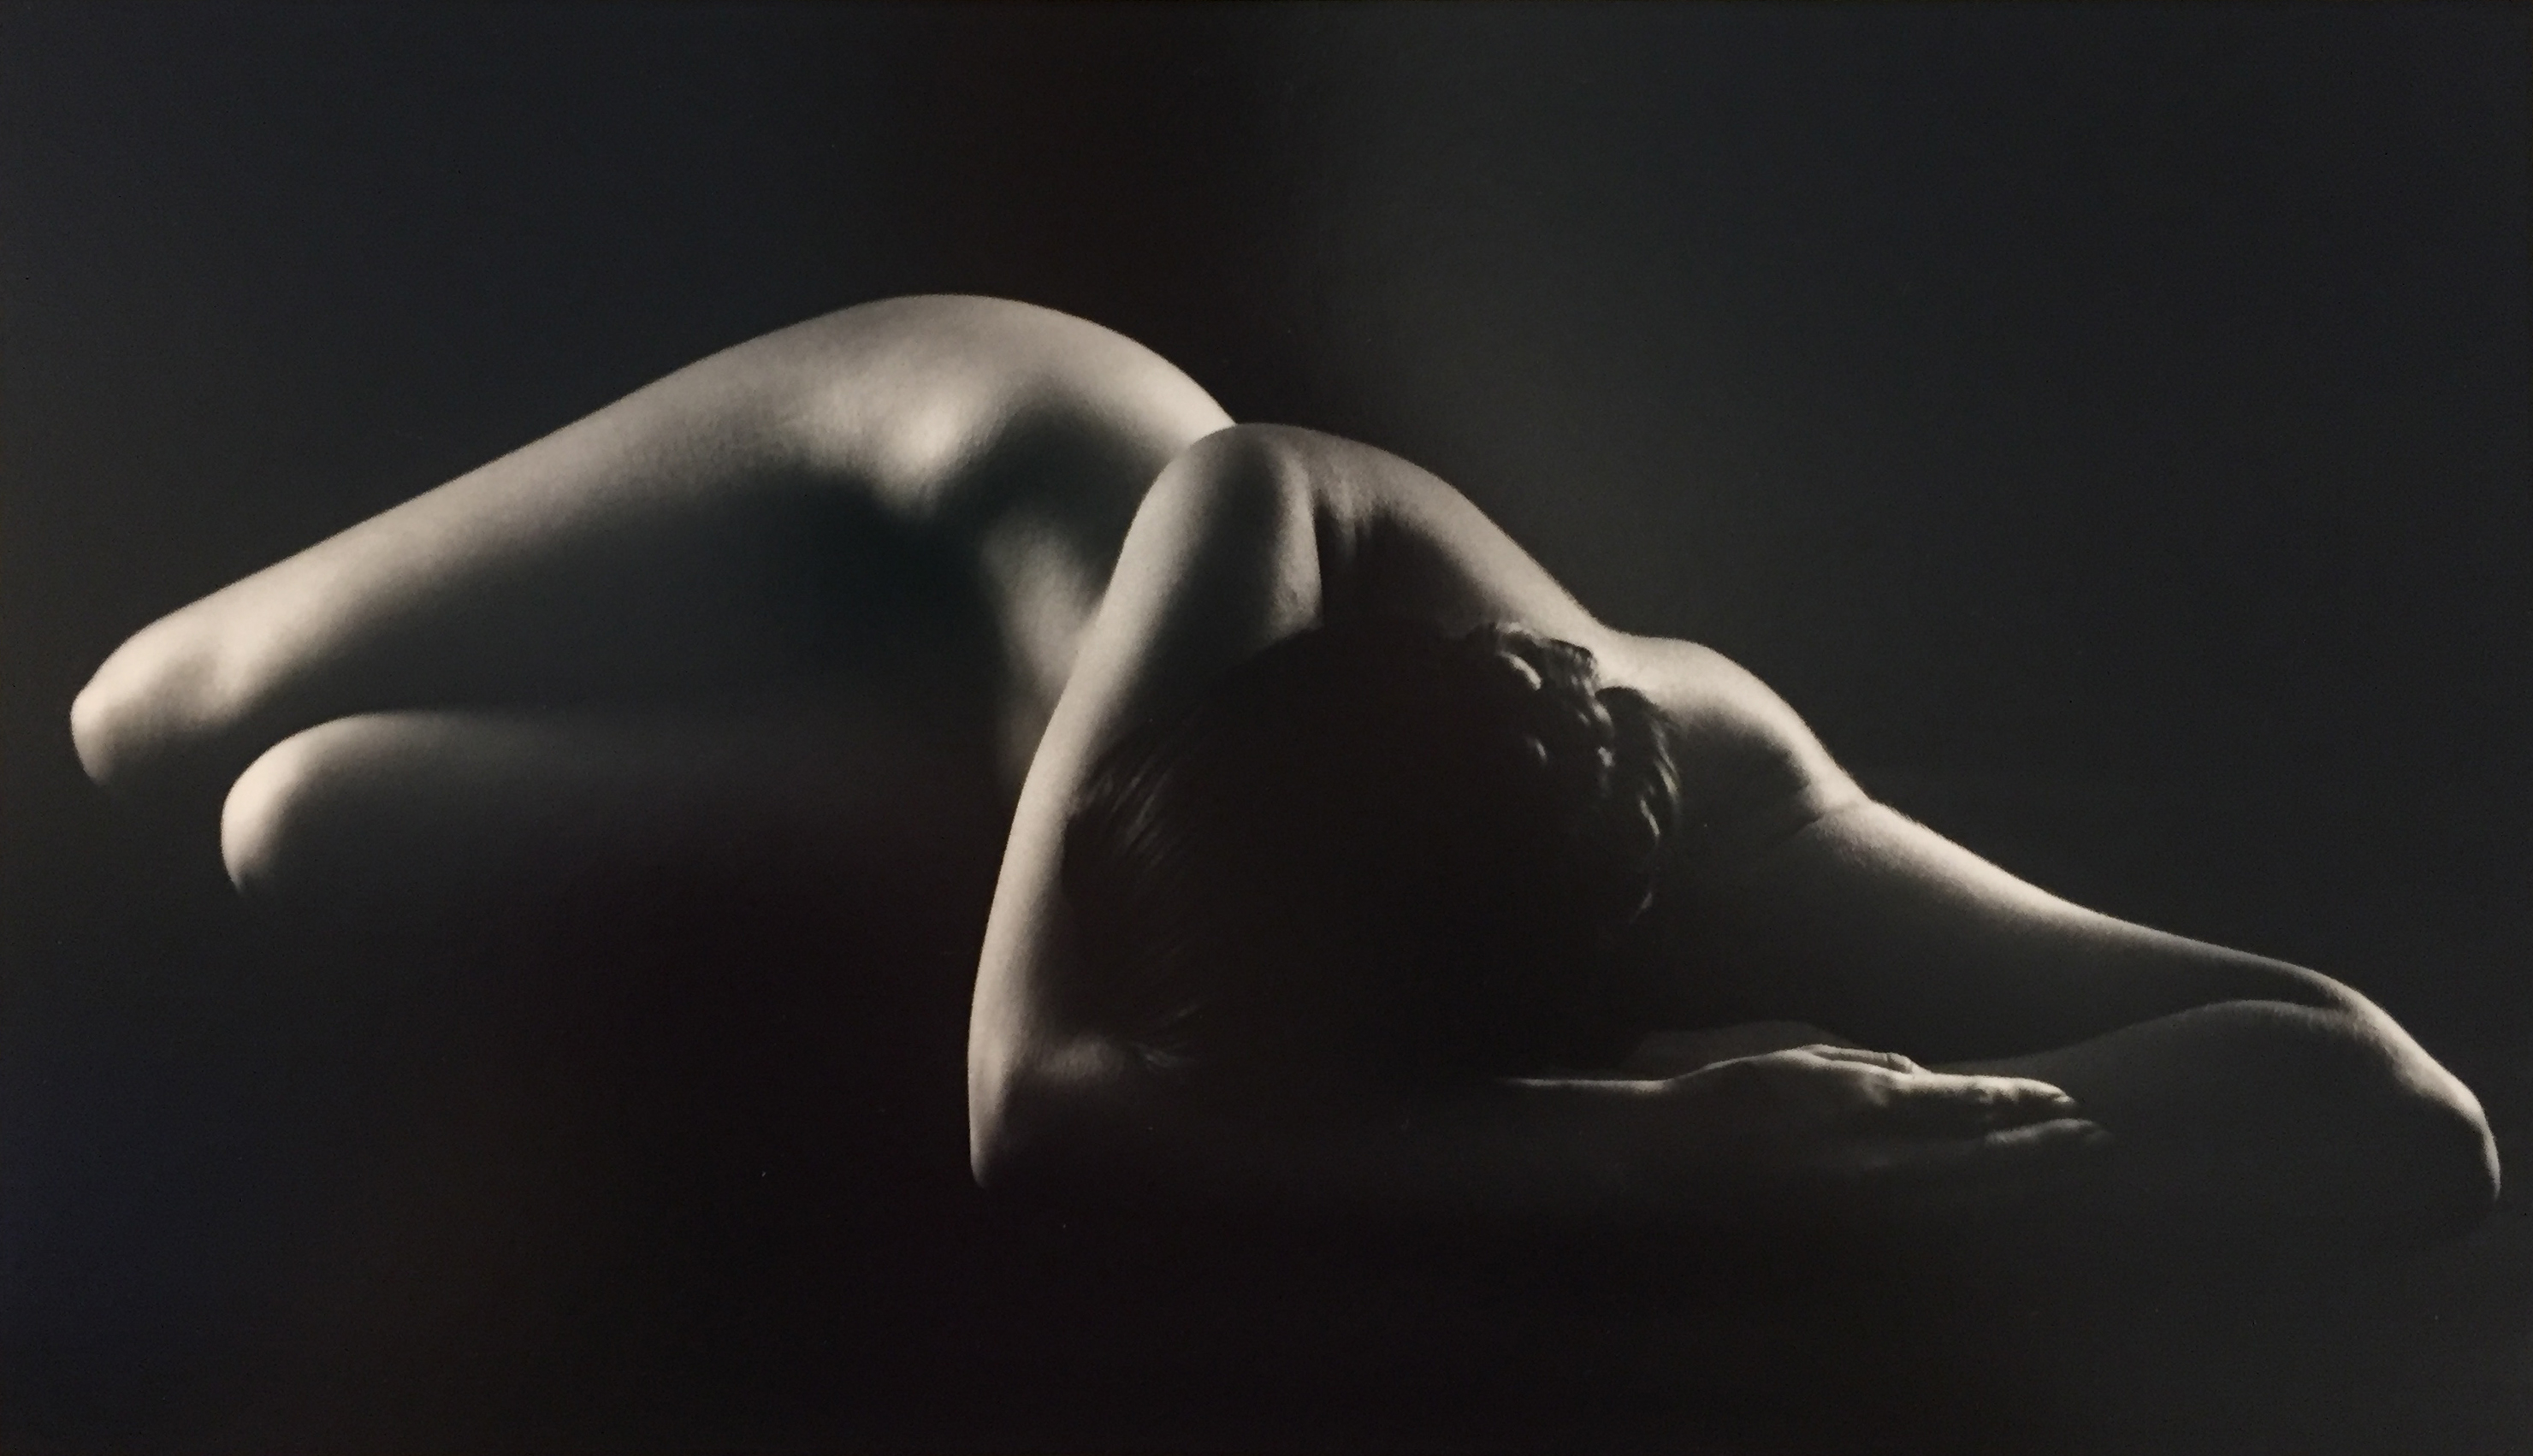 Ruth Bernhard, Perspective II, 1967, toned gelatin silver print, 8 x 13.75 inches, signed by artist, $12,000.